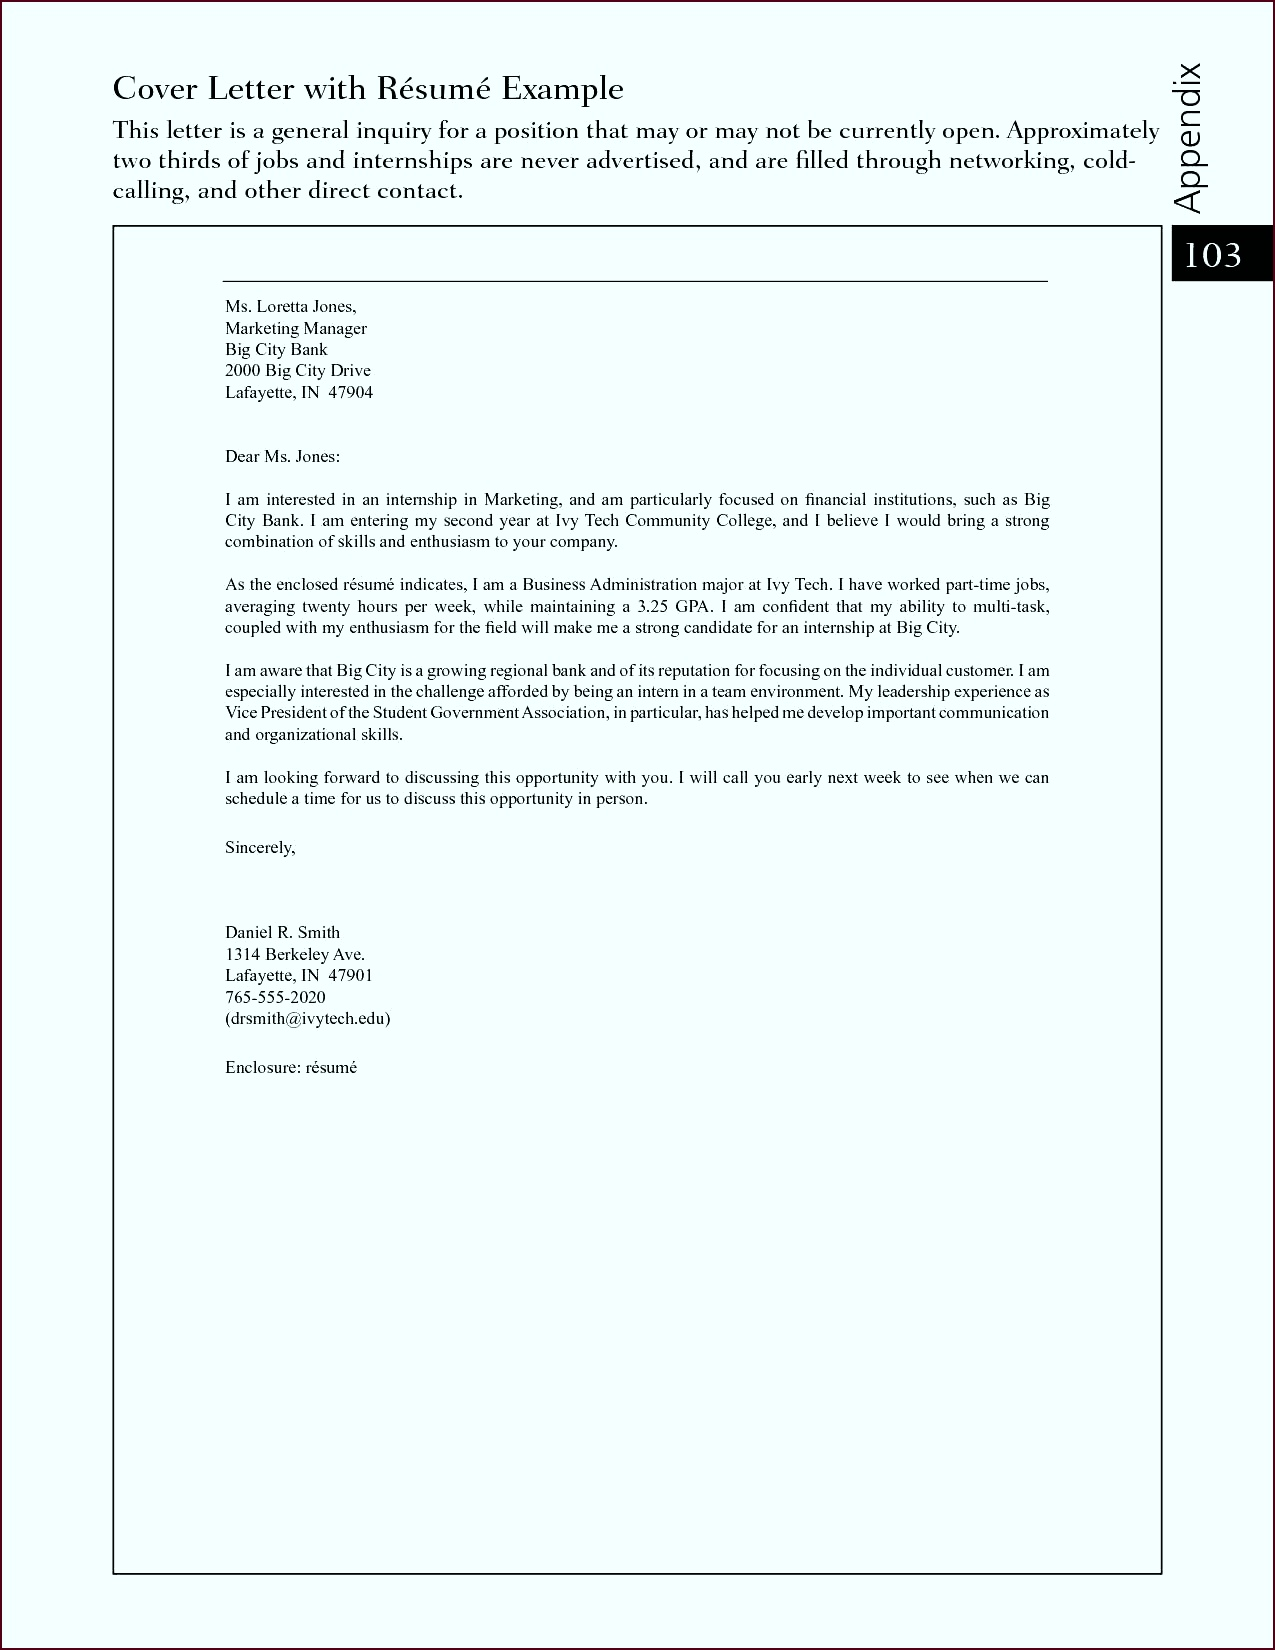 Resume Cover Letter Template Beautiful Resume Cover Sheet Template Free Cover Letter Templates Examples eyawu